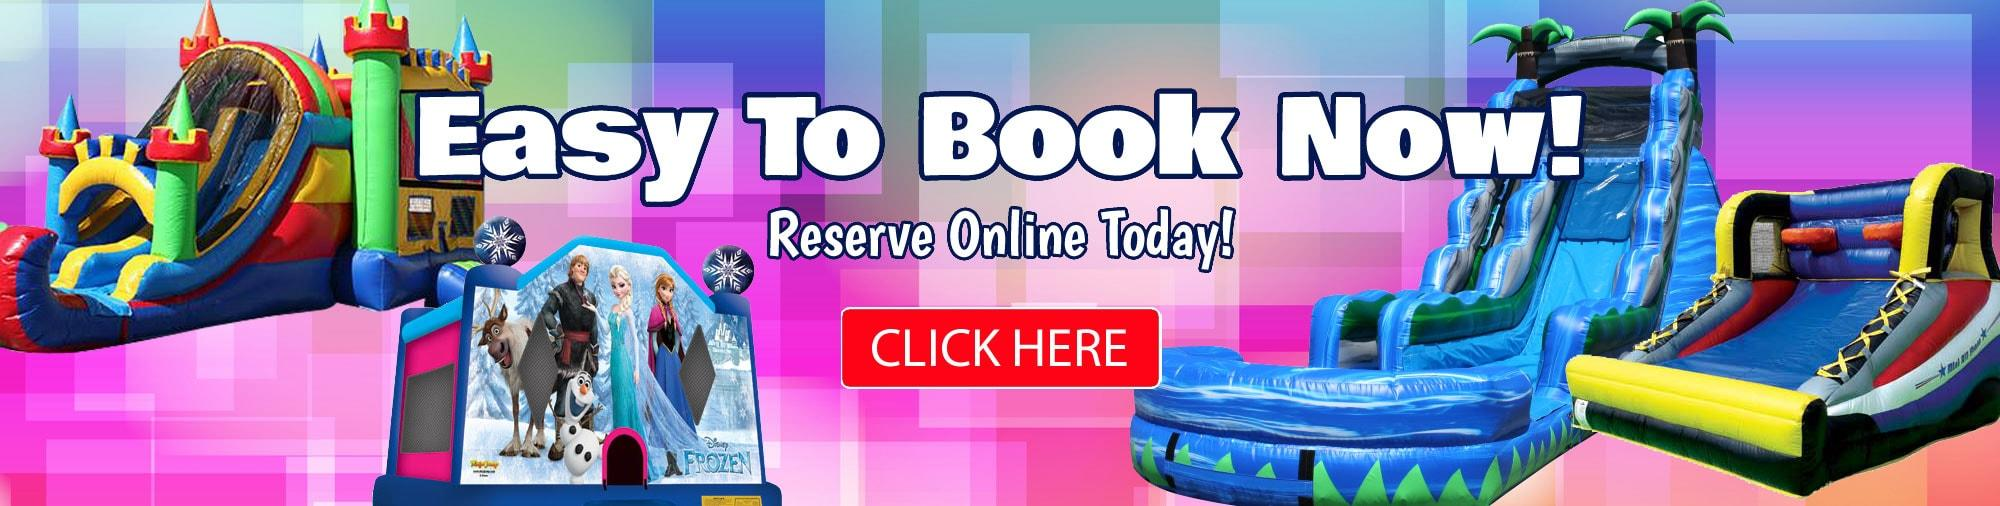 Online Rental Reservations